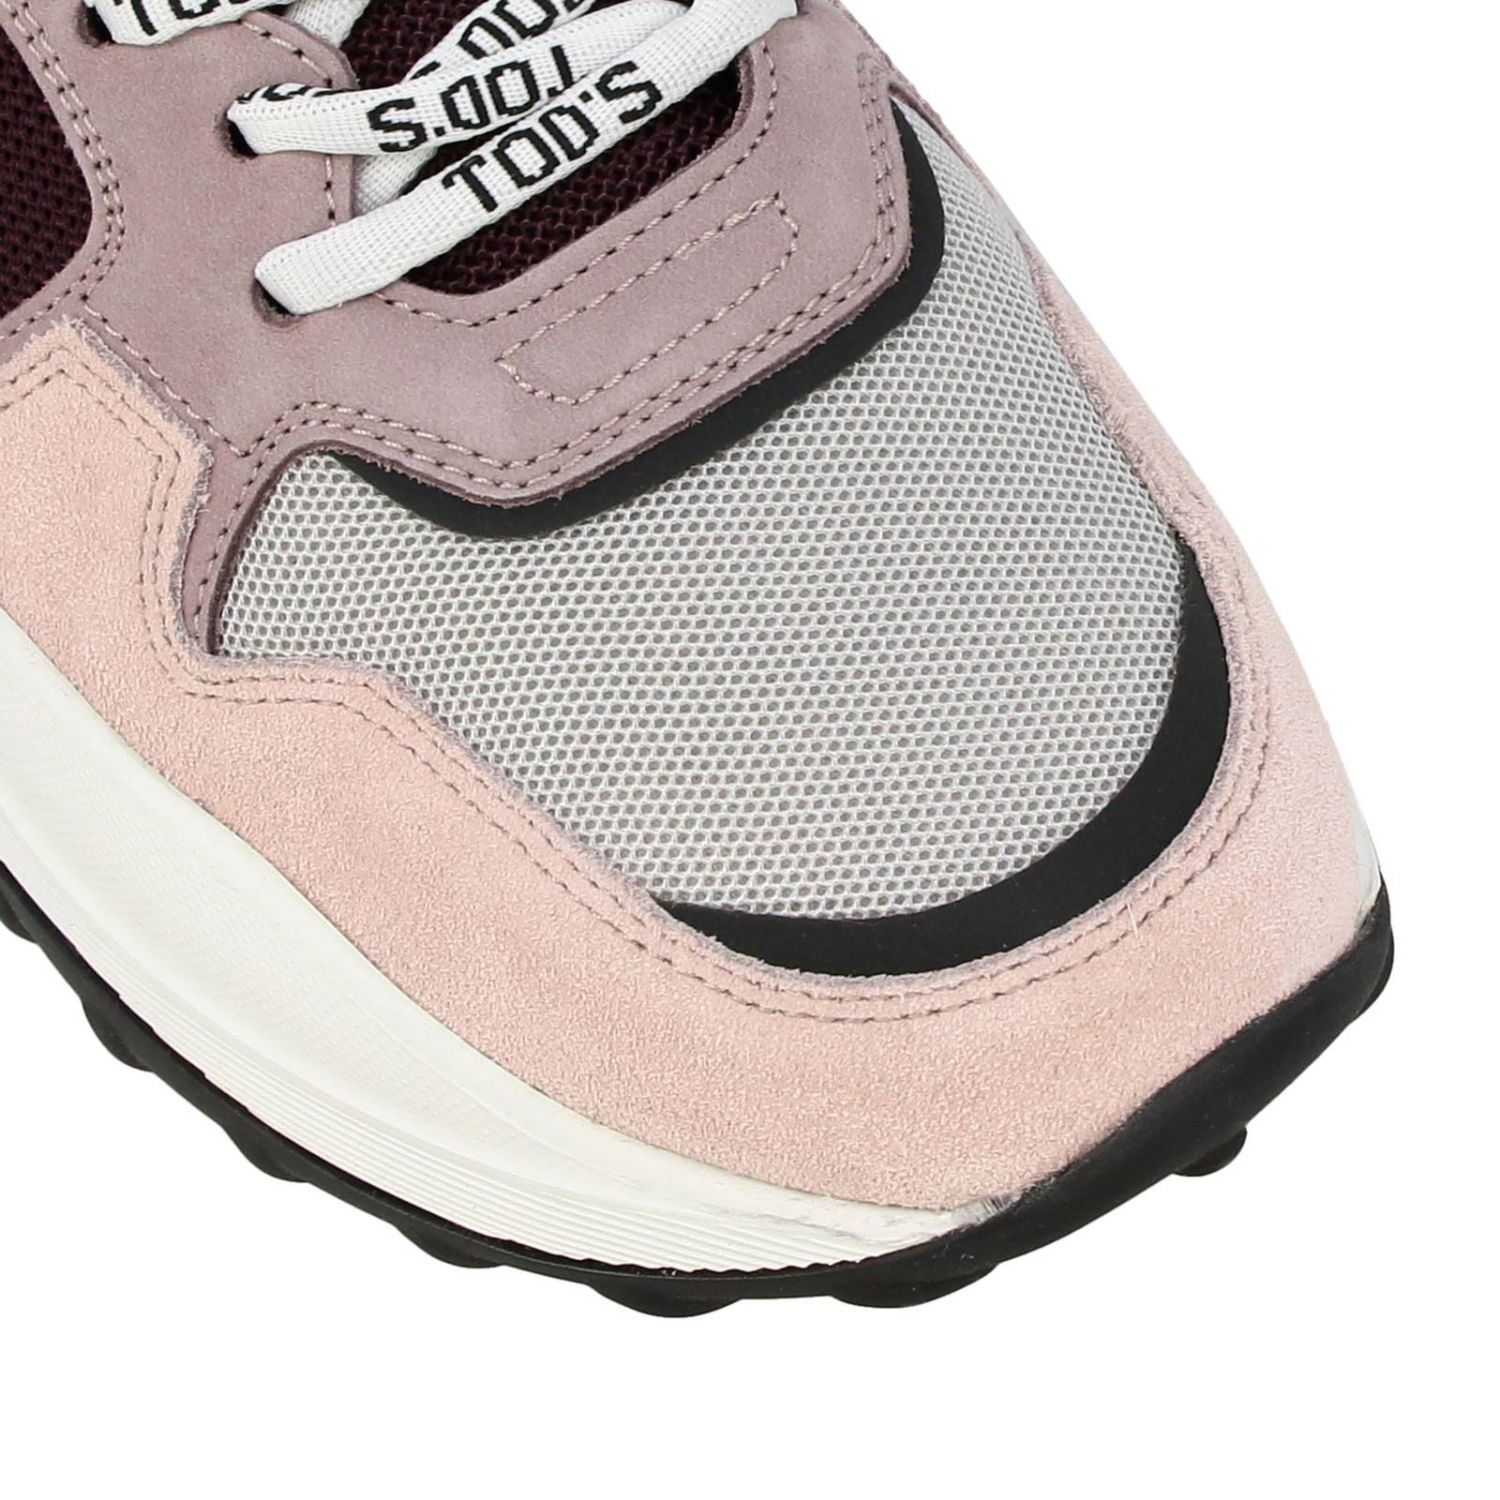 Tod's sneakers in suede leather and micro-net with gommini pink 3